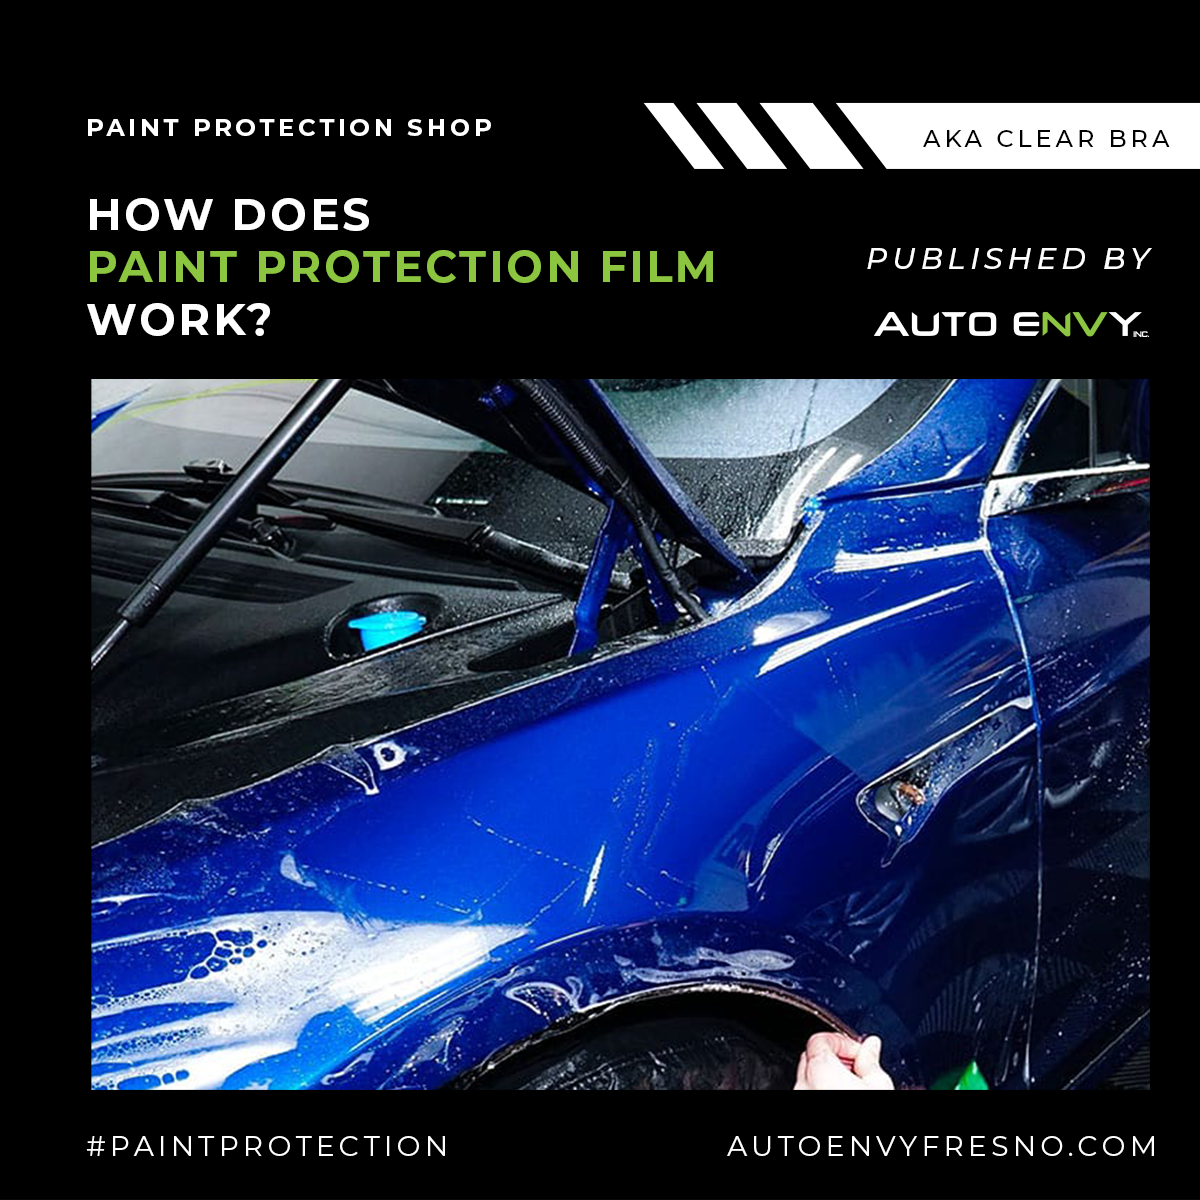 How Does Paint Protection Film Work?